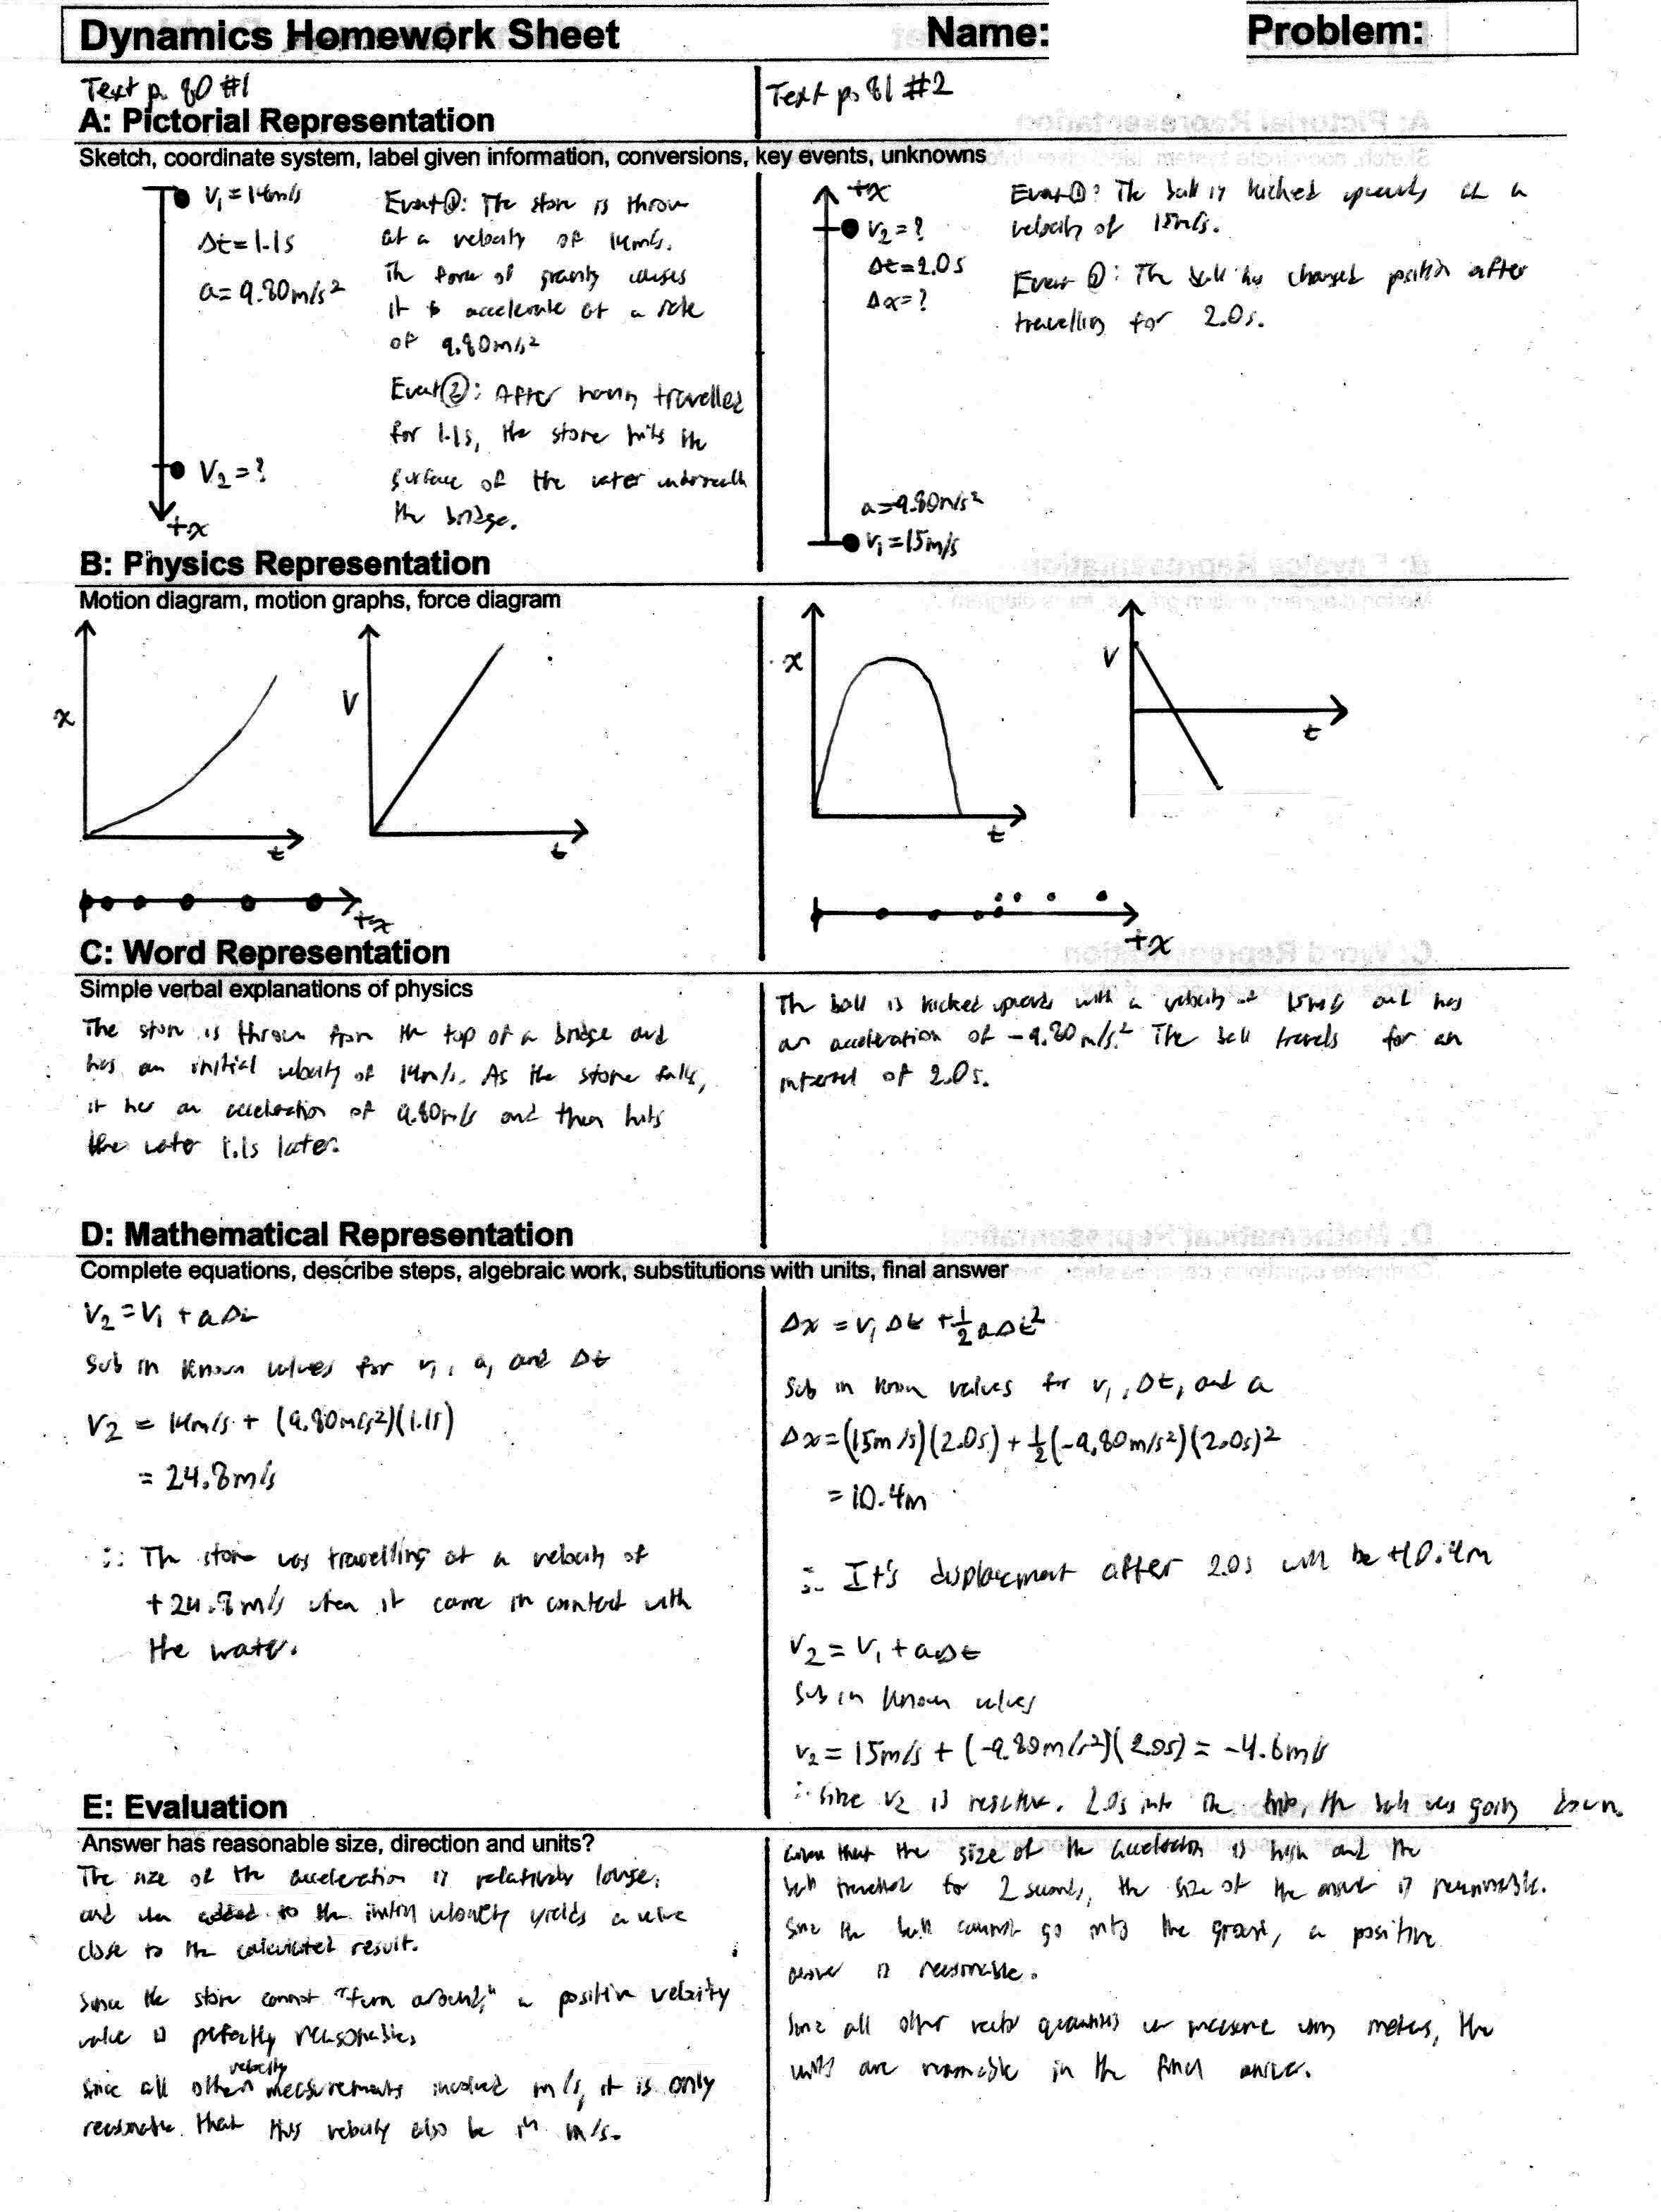 help on physics homework